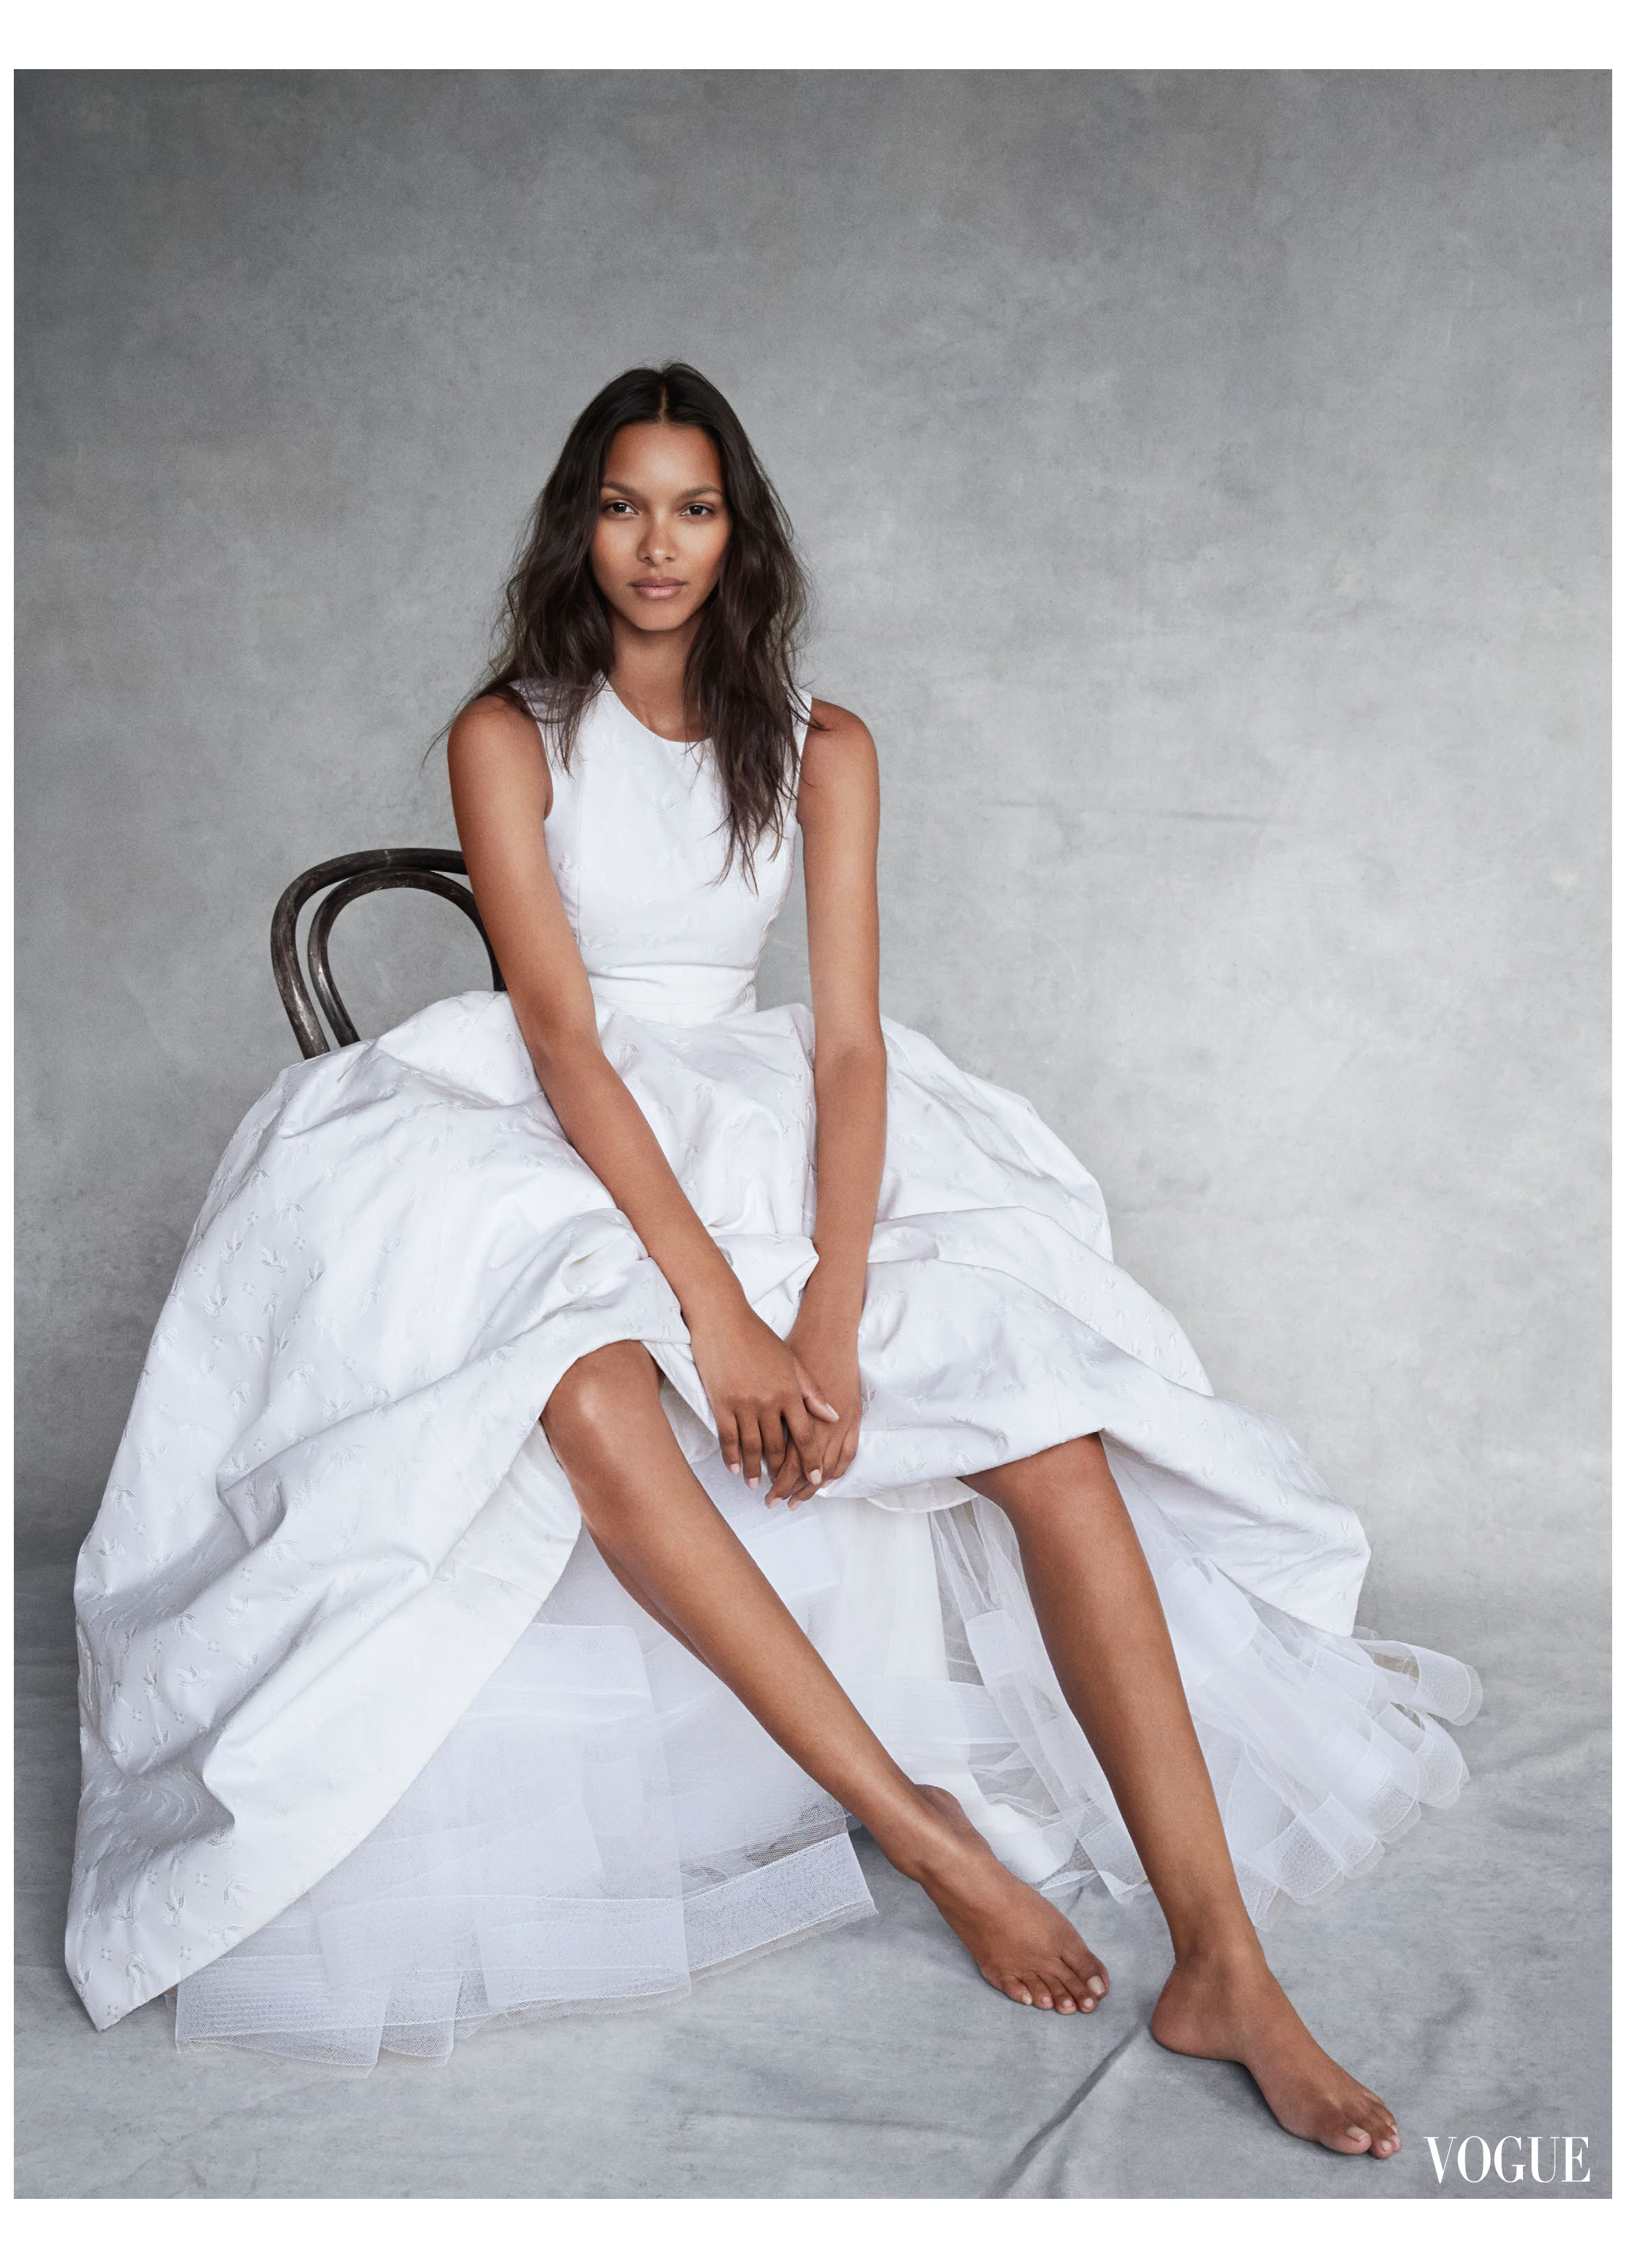 Feet Hacked Lais Ribeiro naked photo 2017